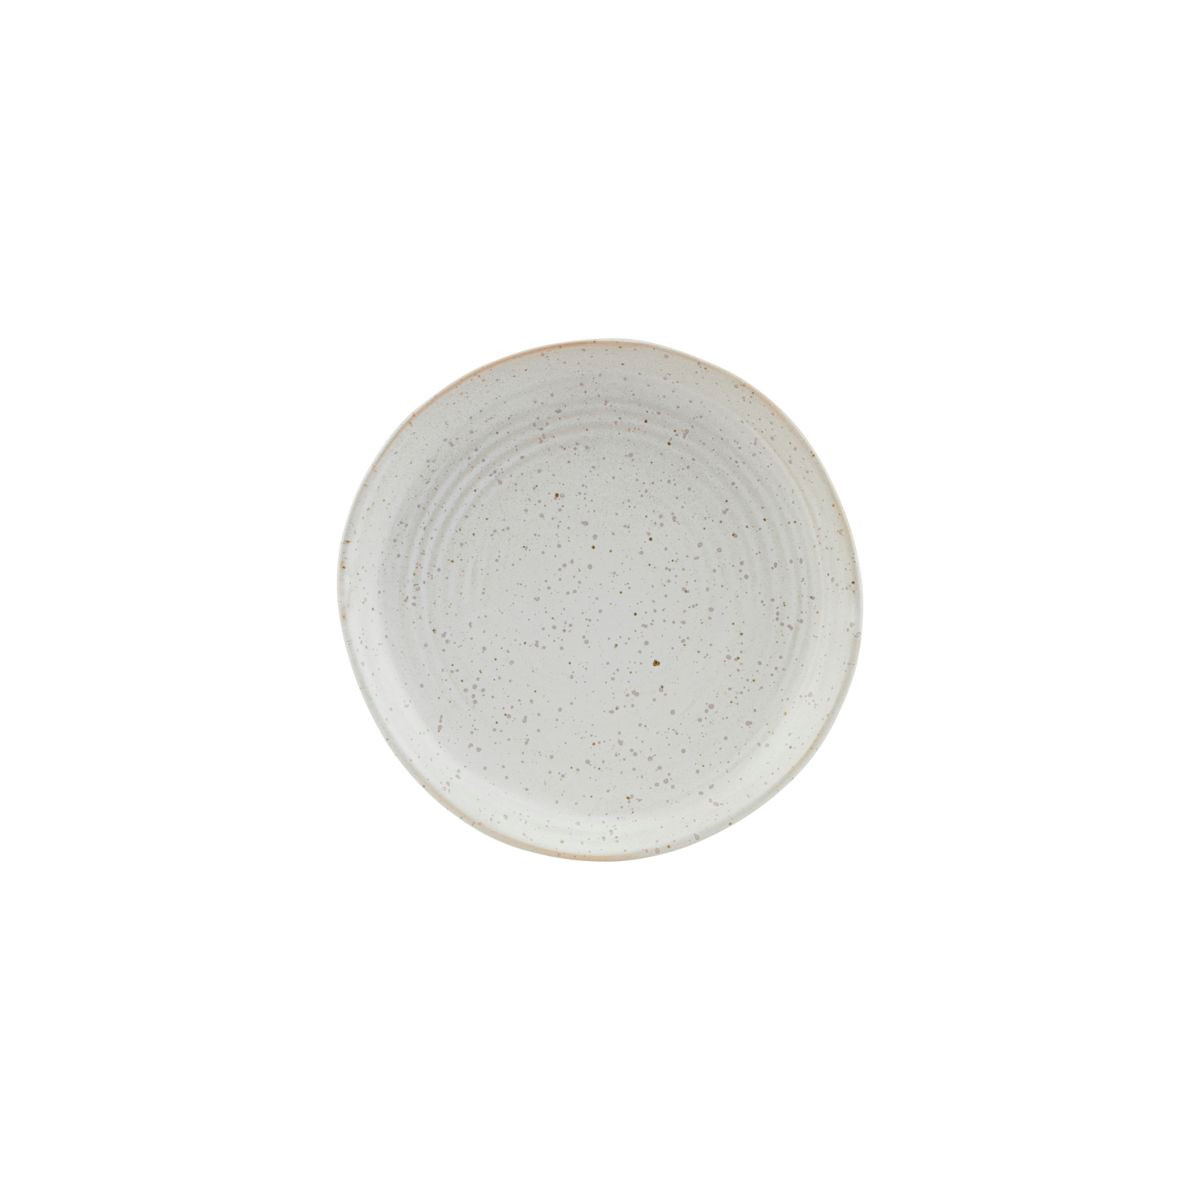 House Doctor Pion Cake Plate Grey/White